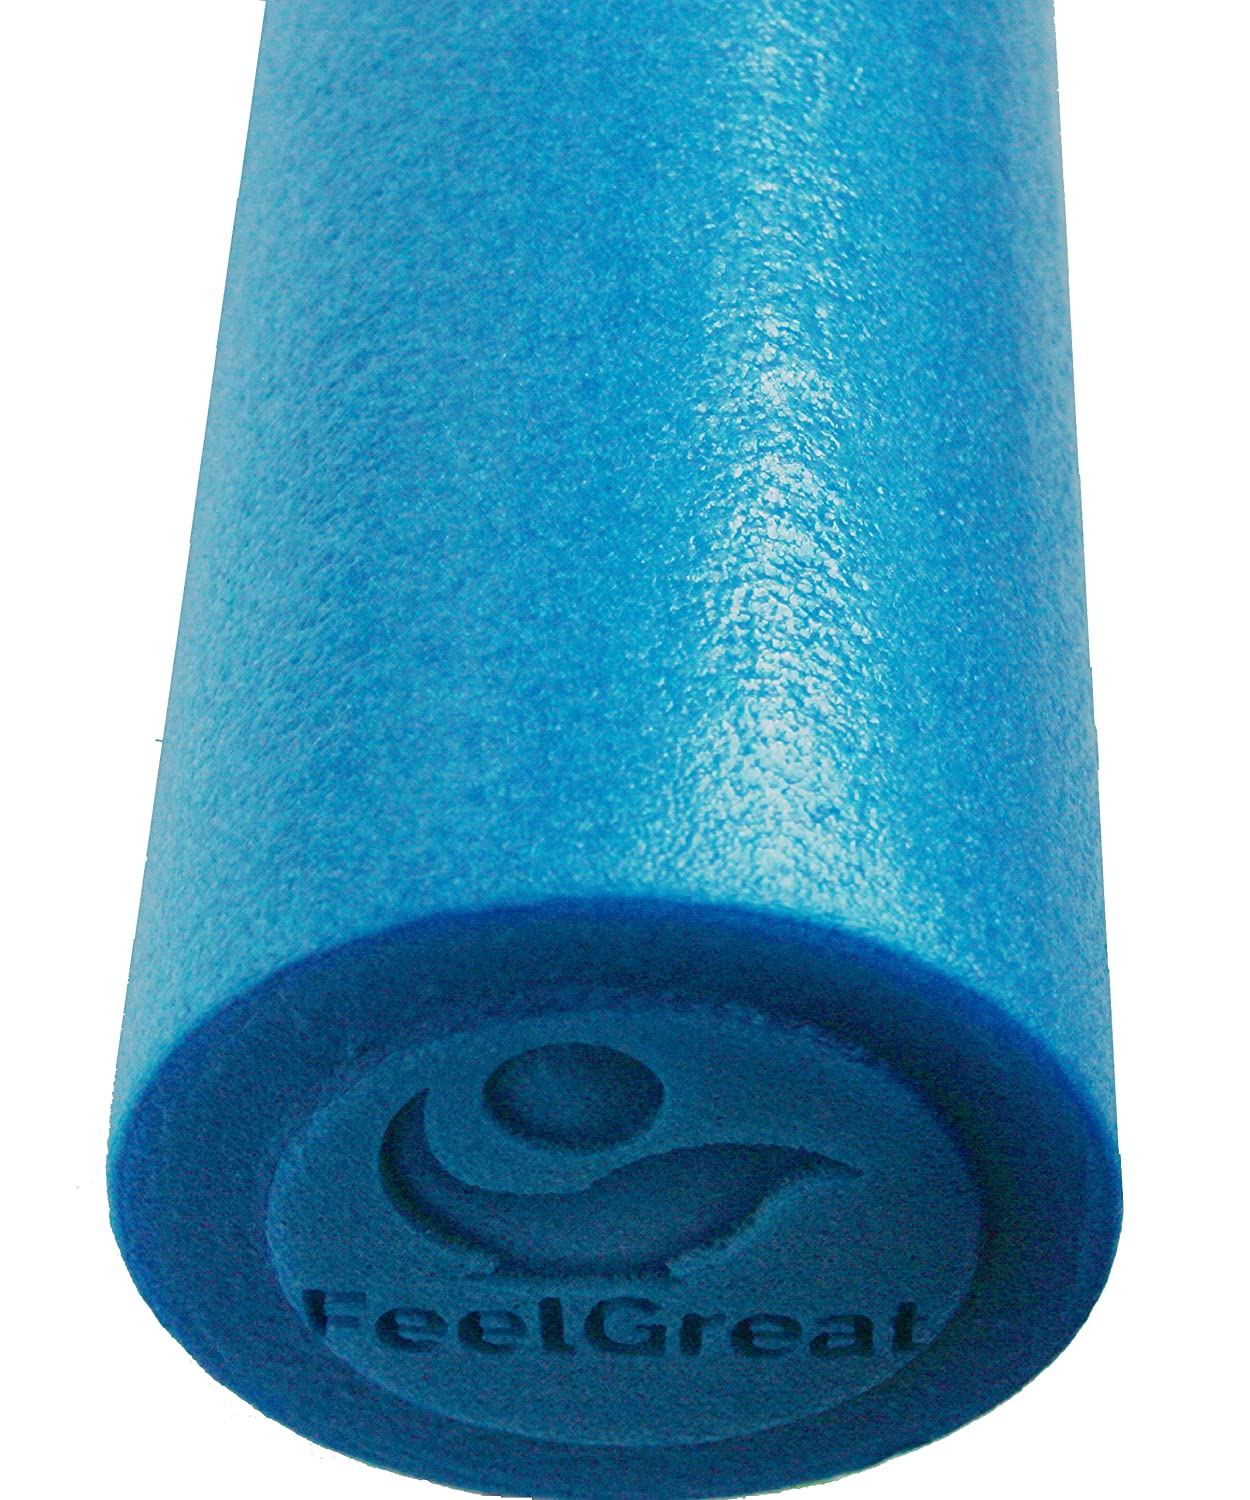 Foam Roller w High Density Firm Core by FeelGreat Physical Therapy Yoga Pilates Massage Therapy Medium Soft Exterior